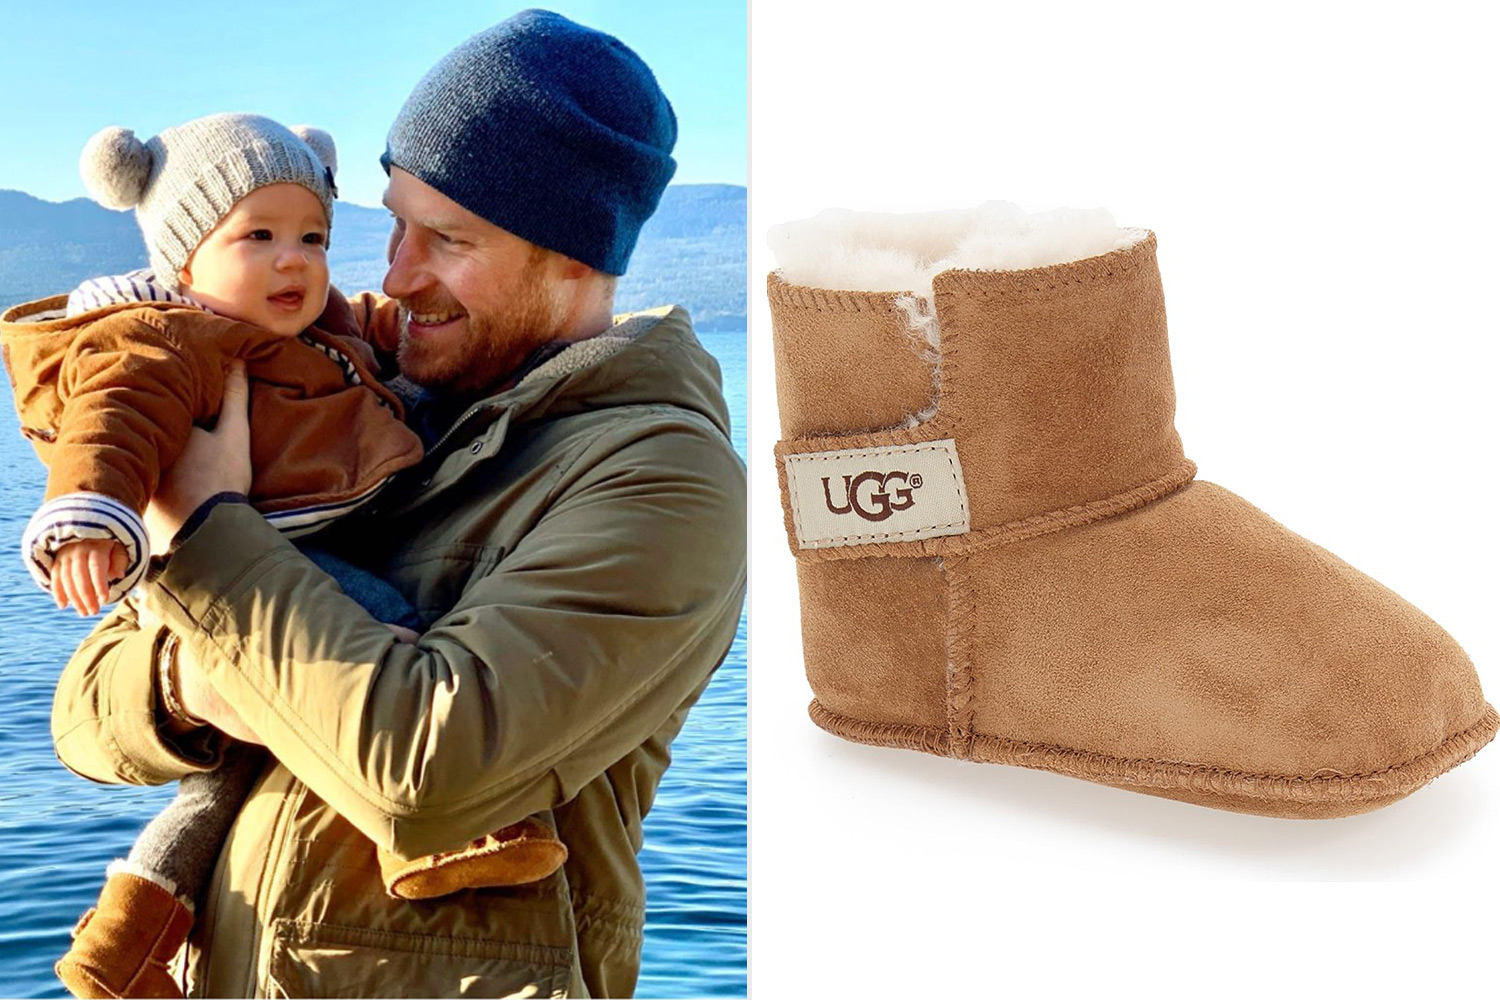 Prince Harry and Archie ugg booties